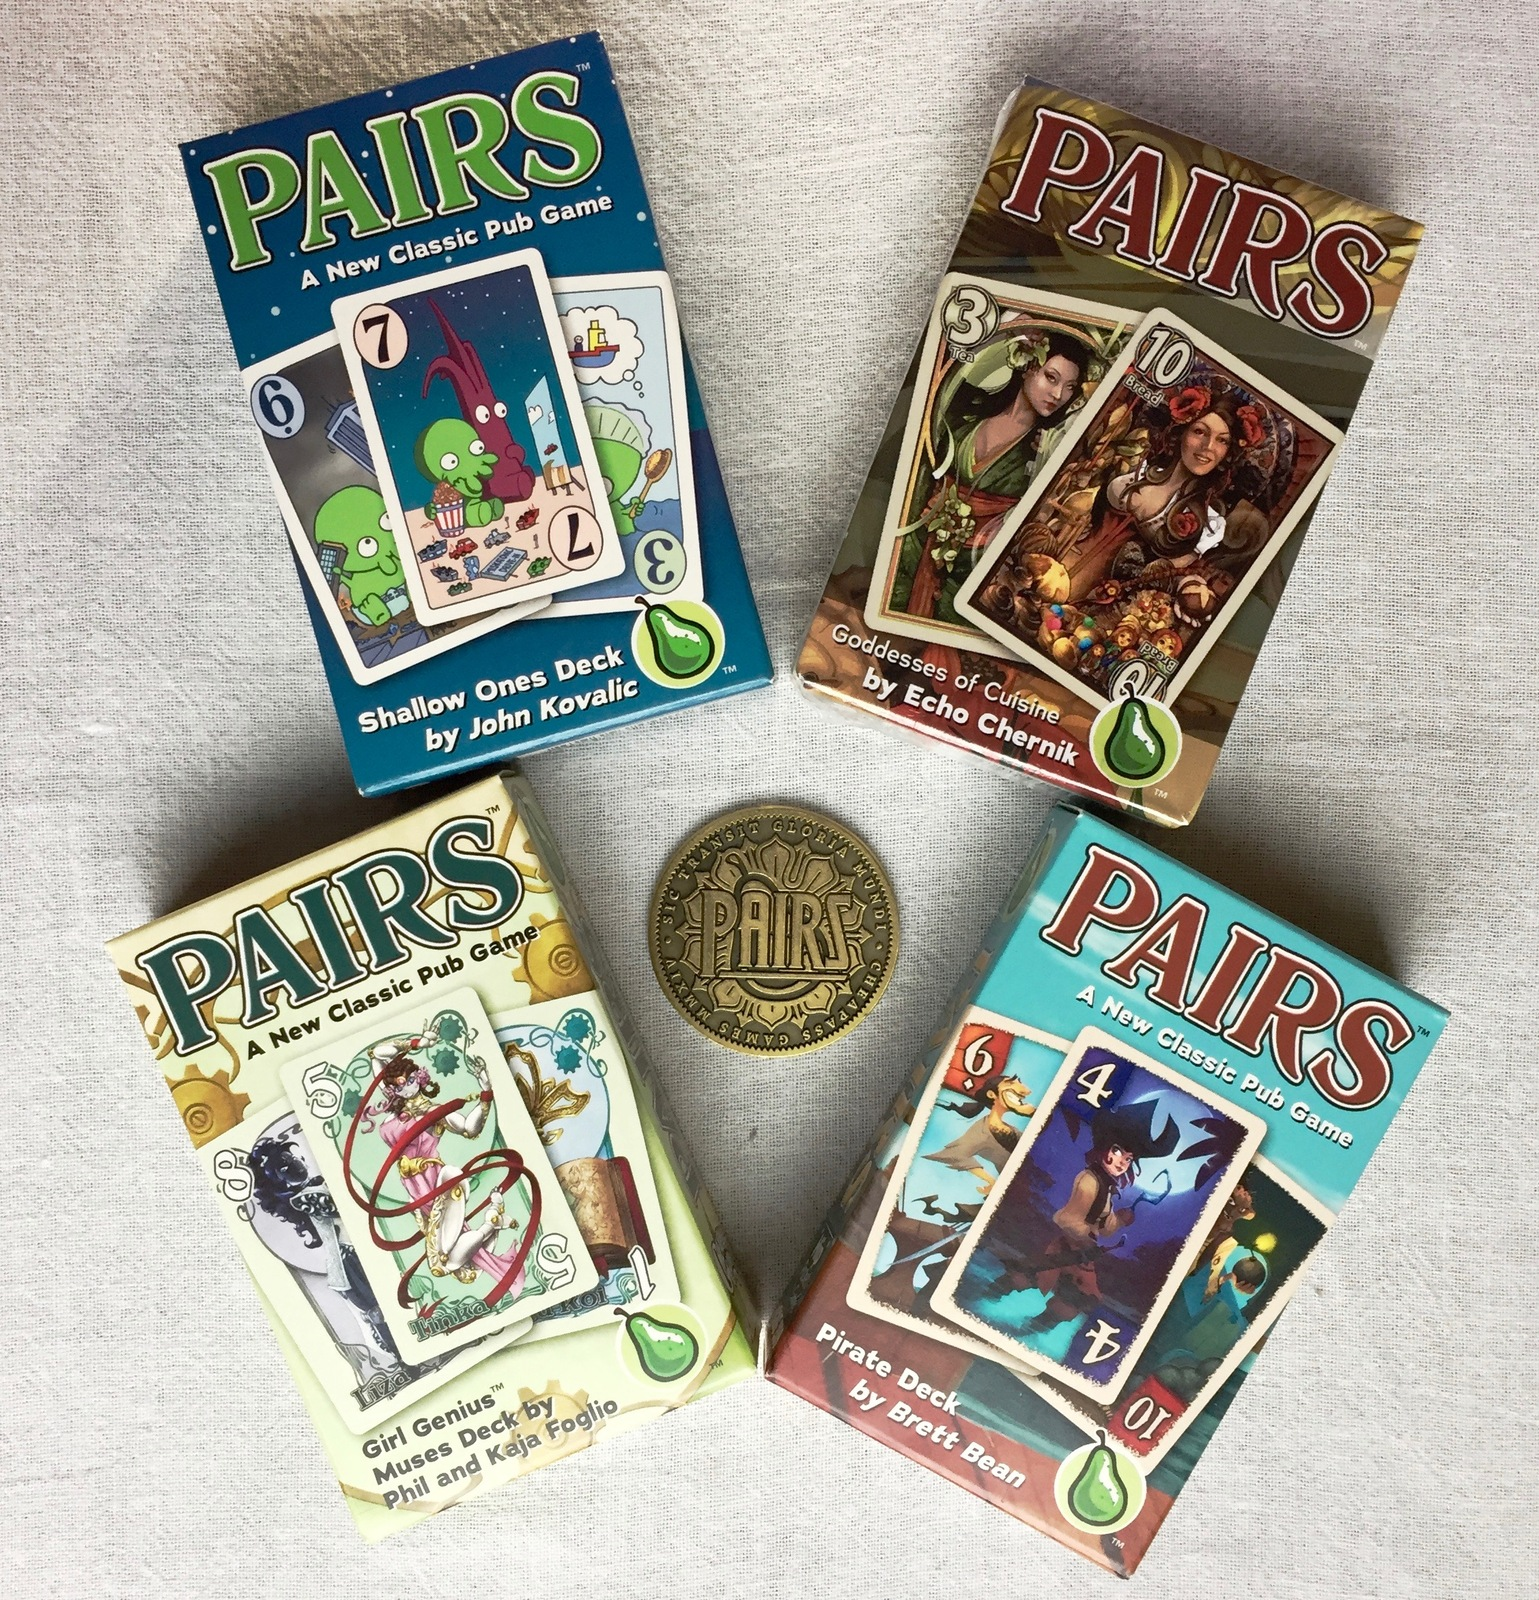 Pairs artists gift pack